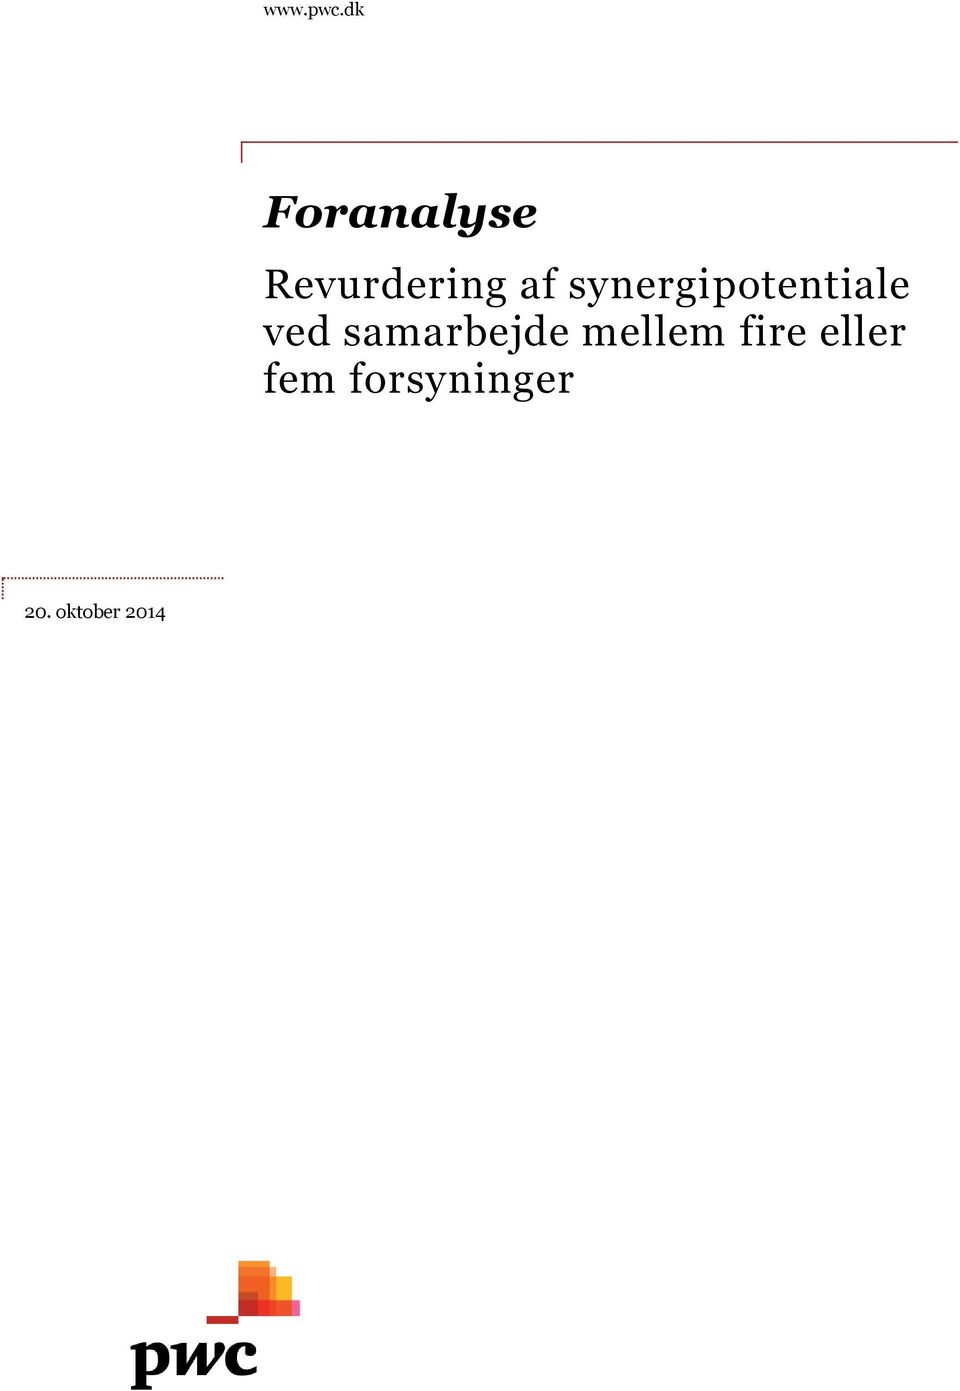 synergipotentiale ved